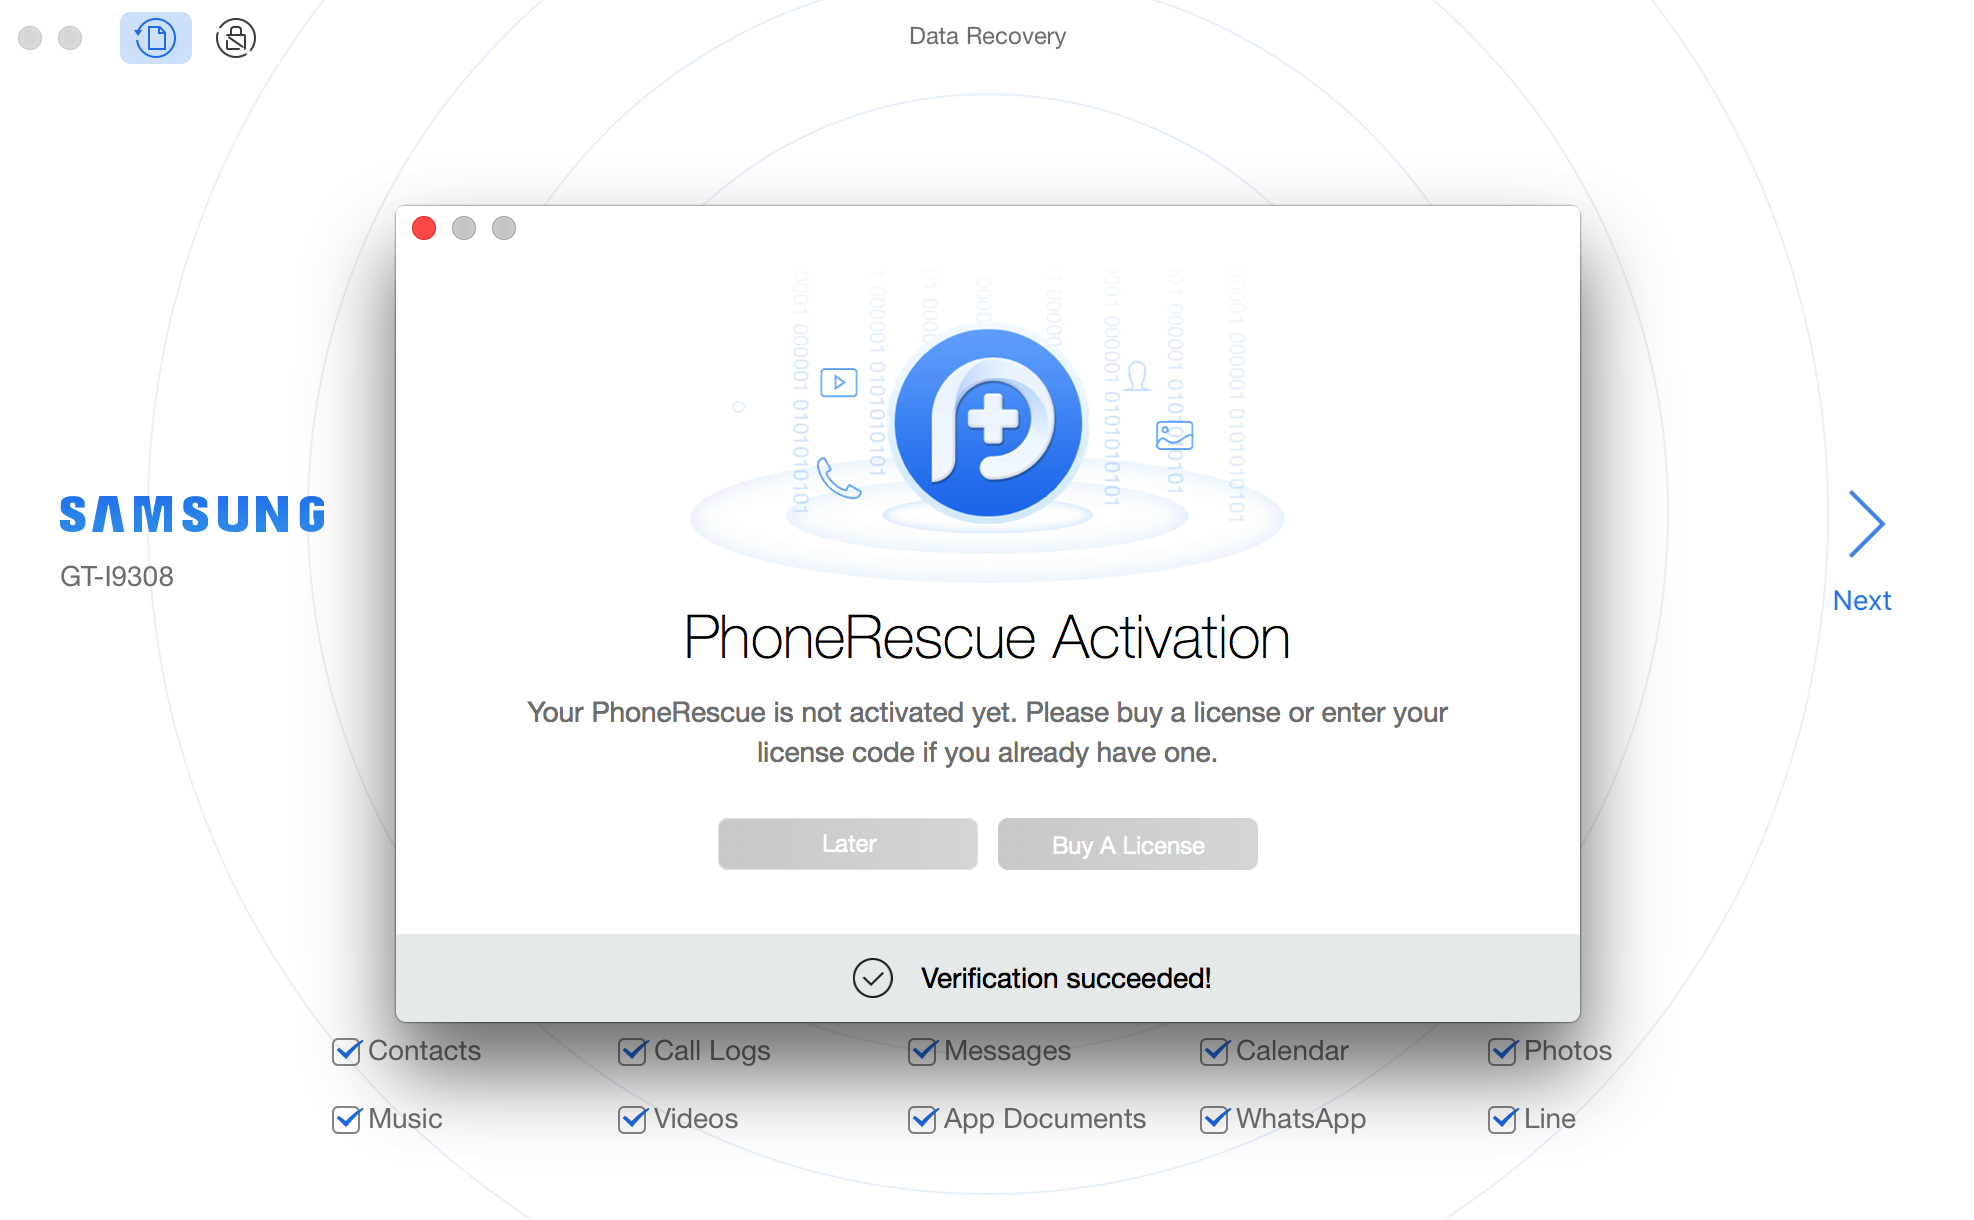 Succeed in Registering PhoneRescue for Android